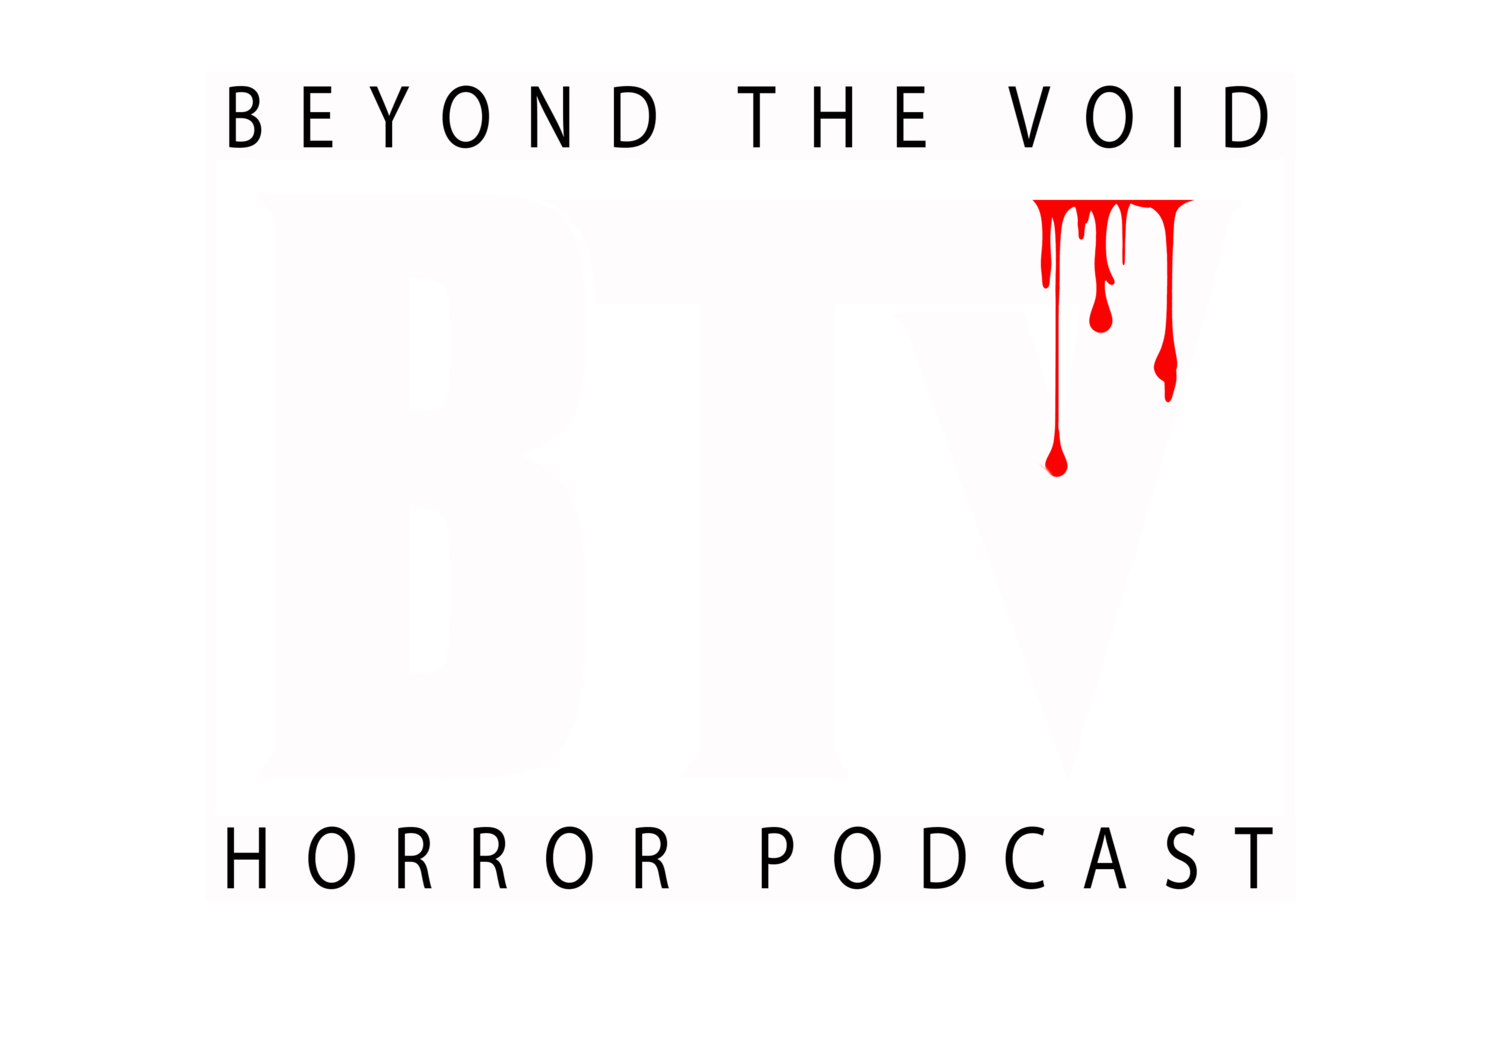 Beyond The Void Horror Podcast